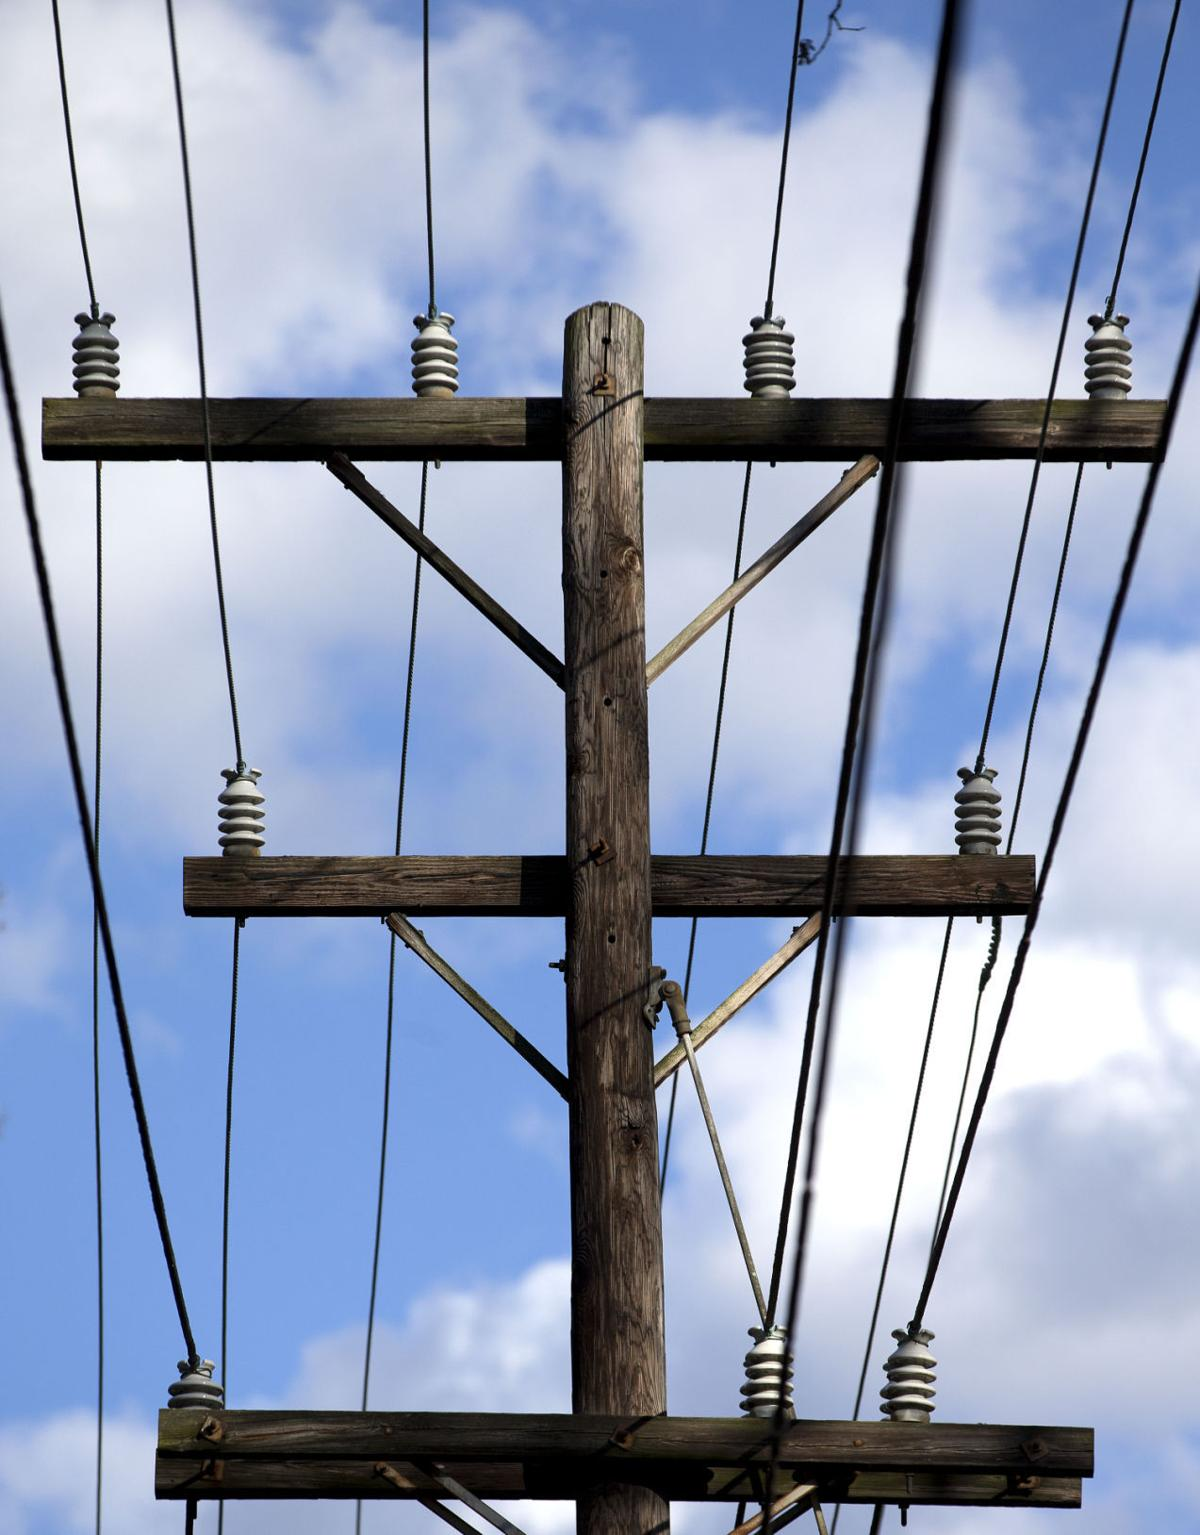 Residents say power lines endanger their health in Lake